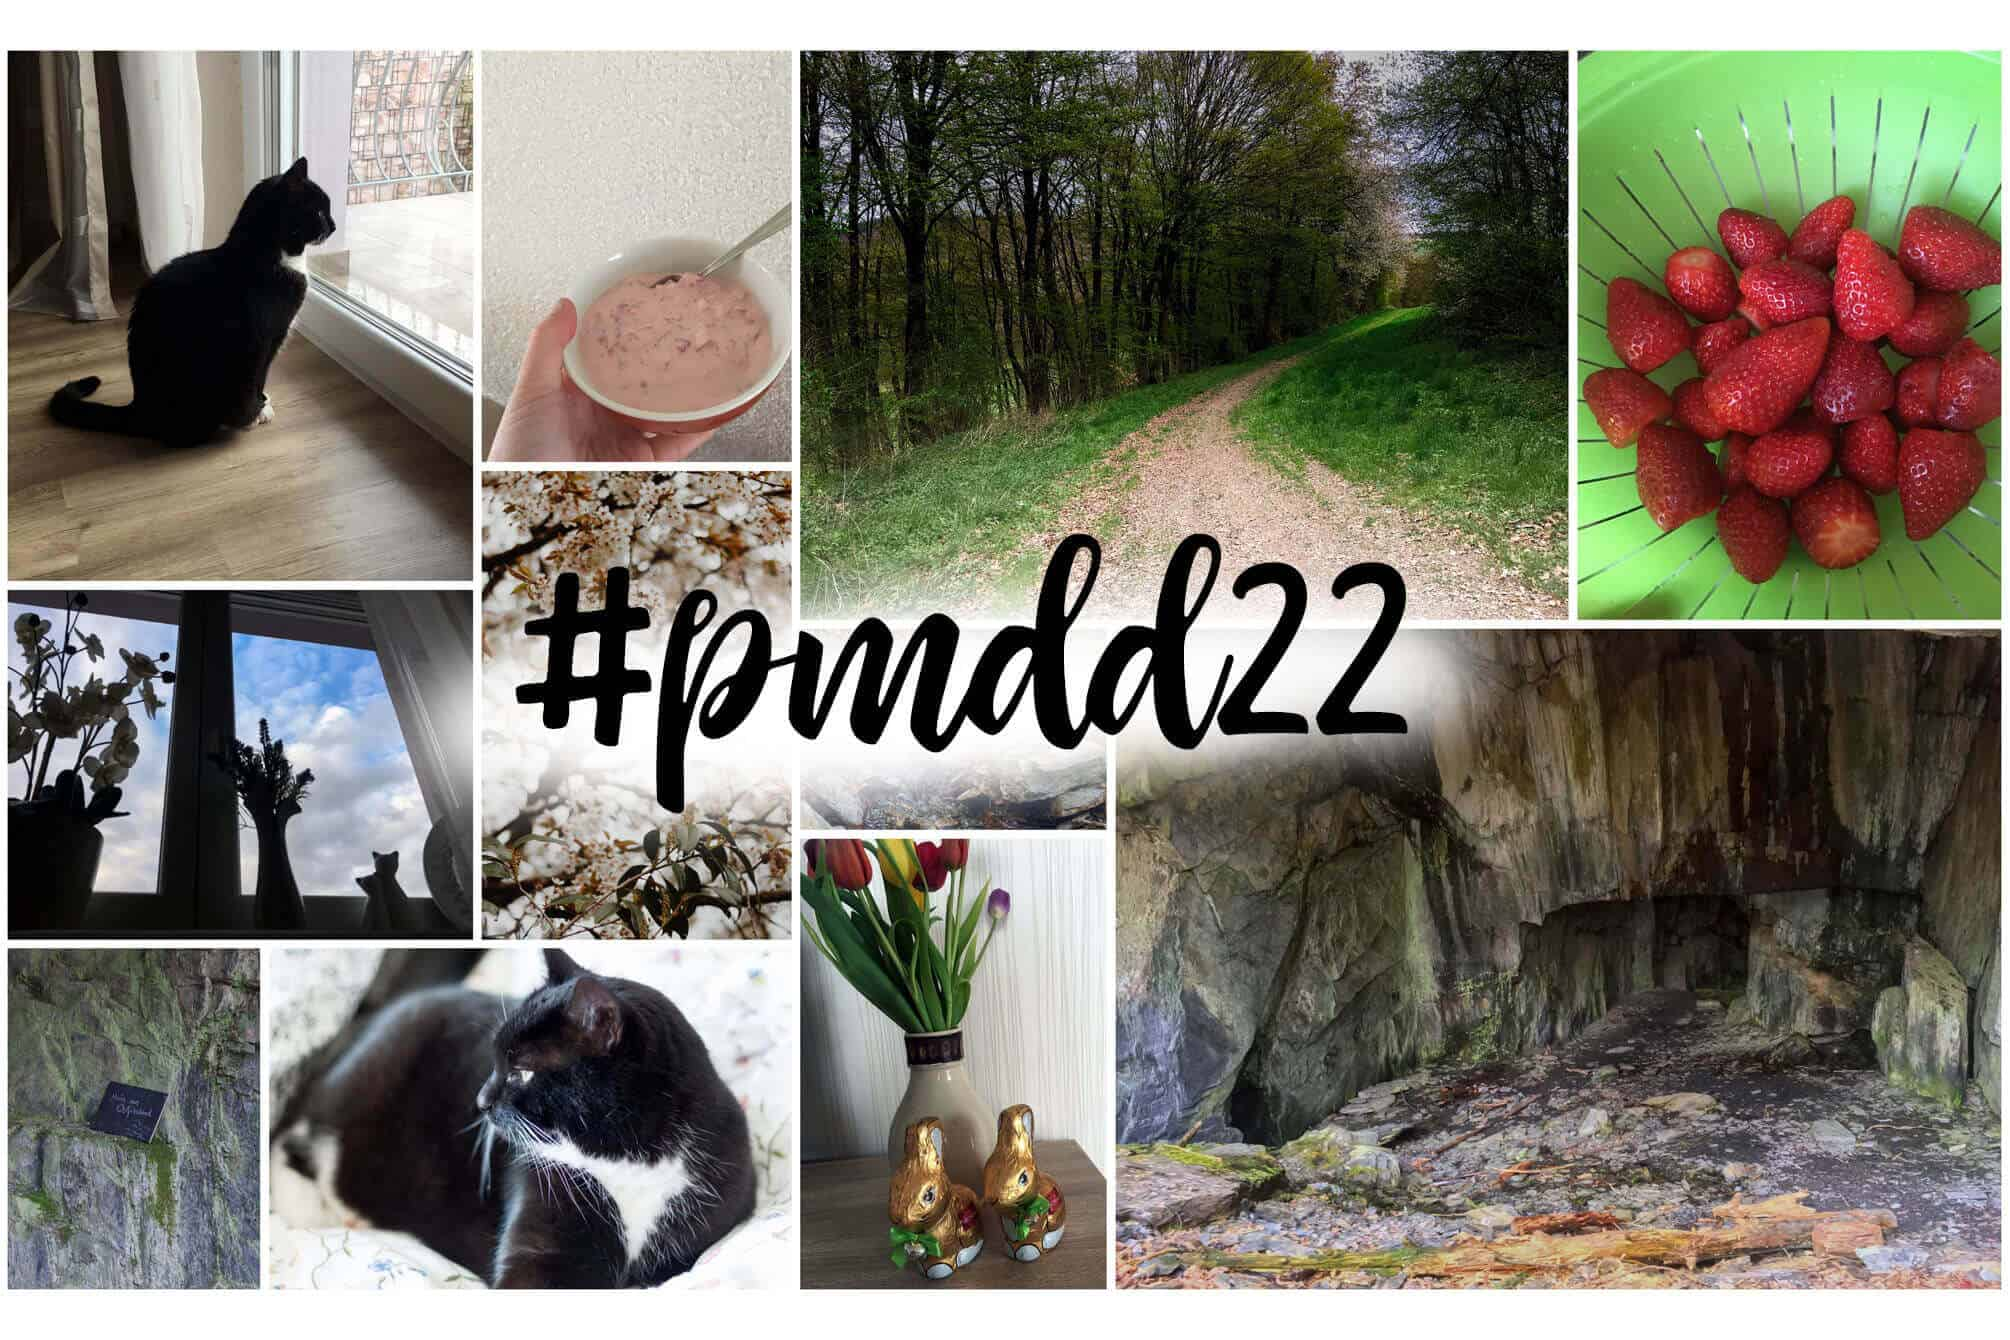 pmdd22 - Picture my Day Day Nummer 22